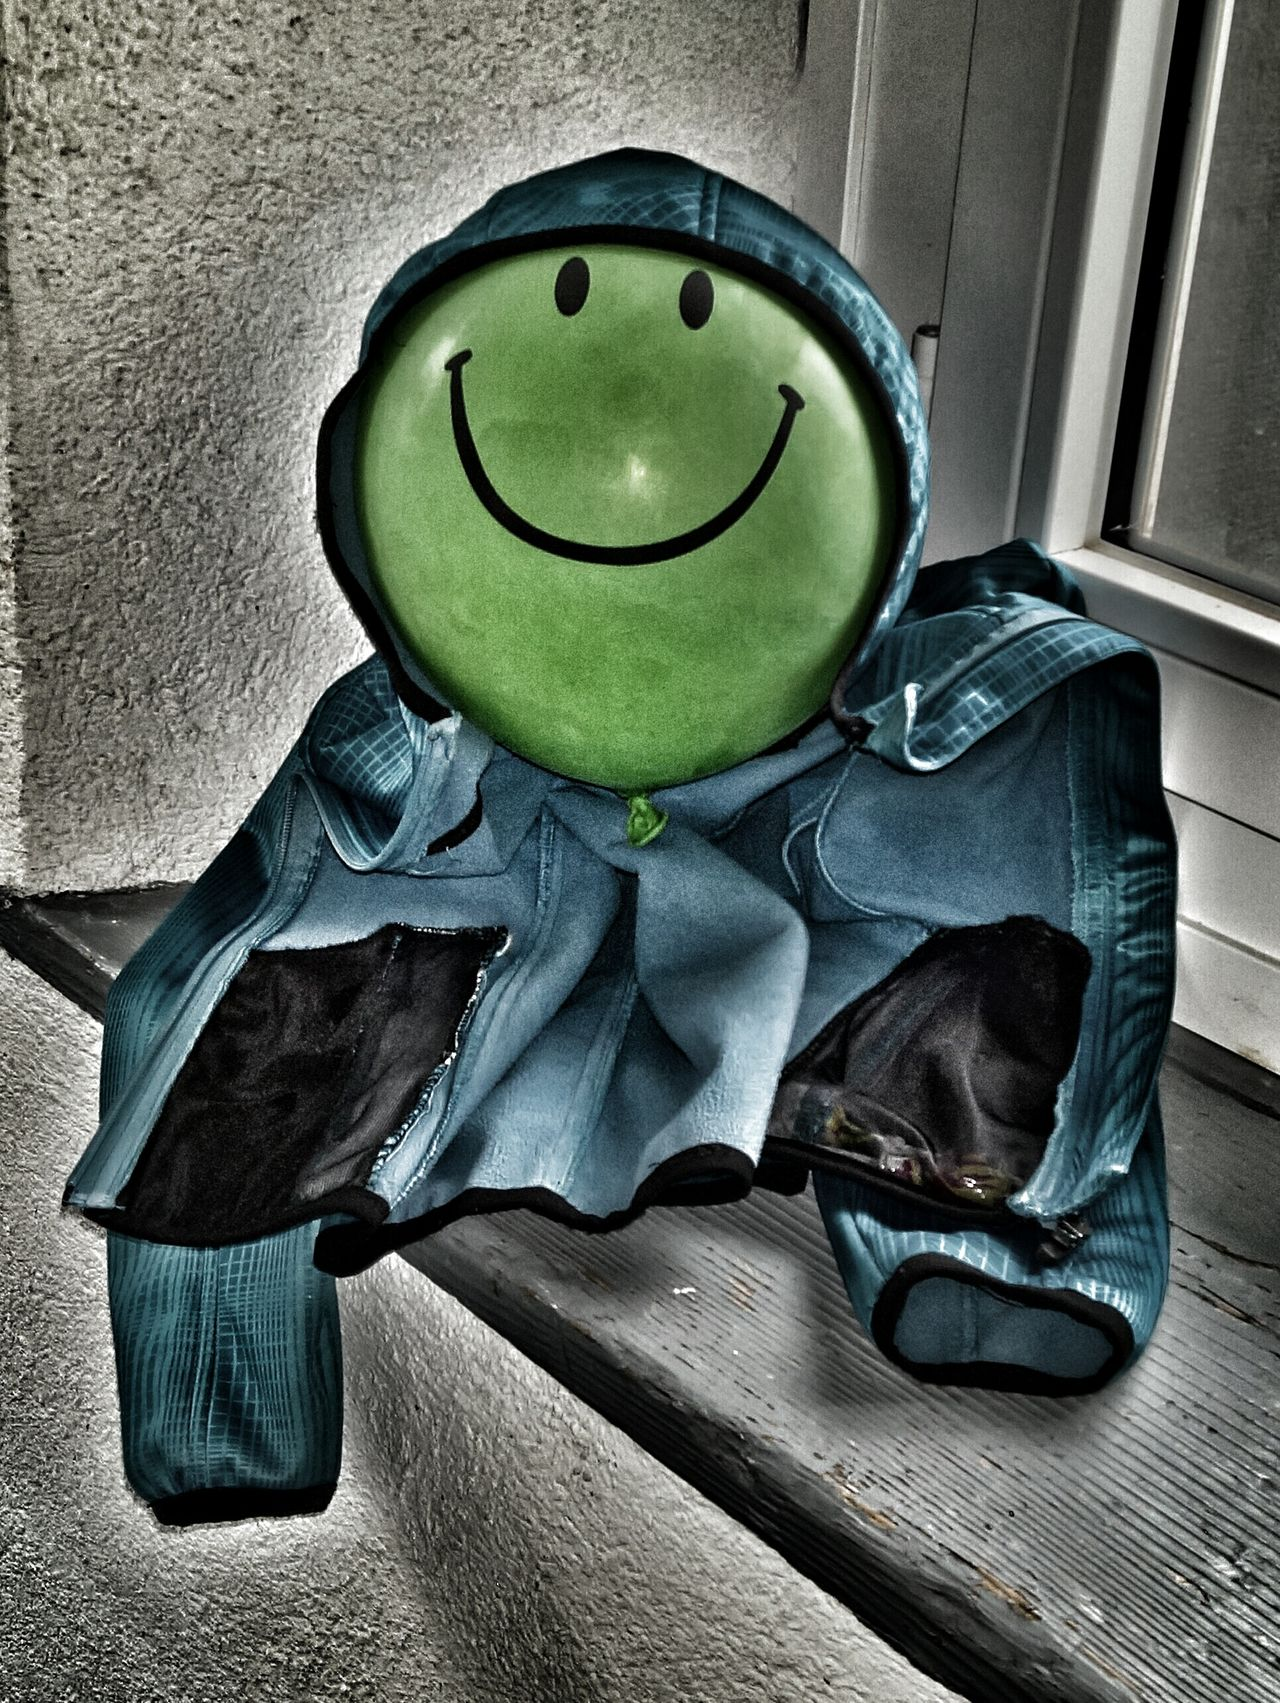 Mister Balloon-Man Green Balloon Green Green Color Jacket Blue Jacket Blue Blue Color Smile Joke Filter Filtered Image The Architect - 2016 EyeEm Awards